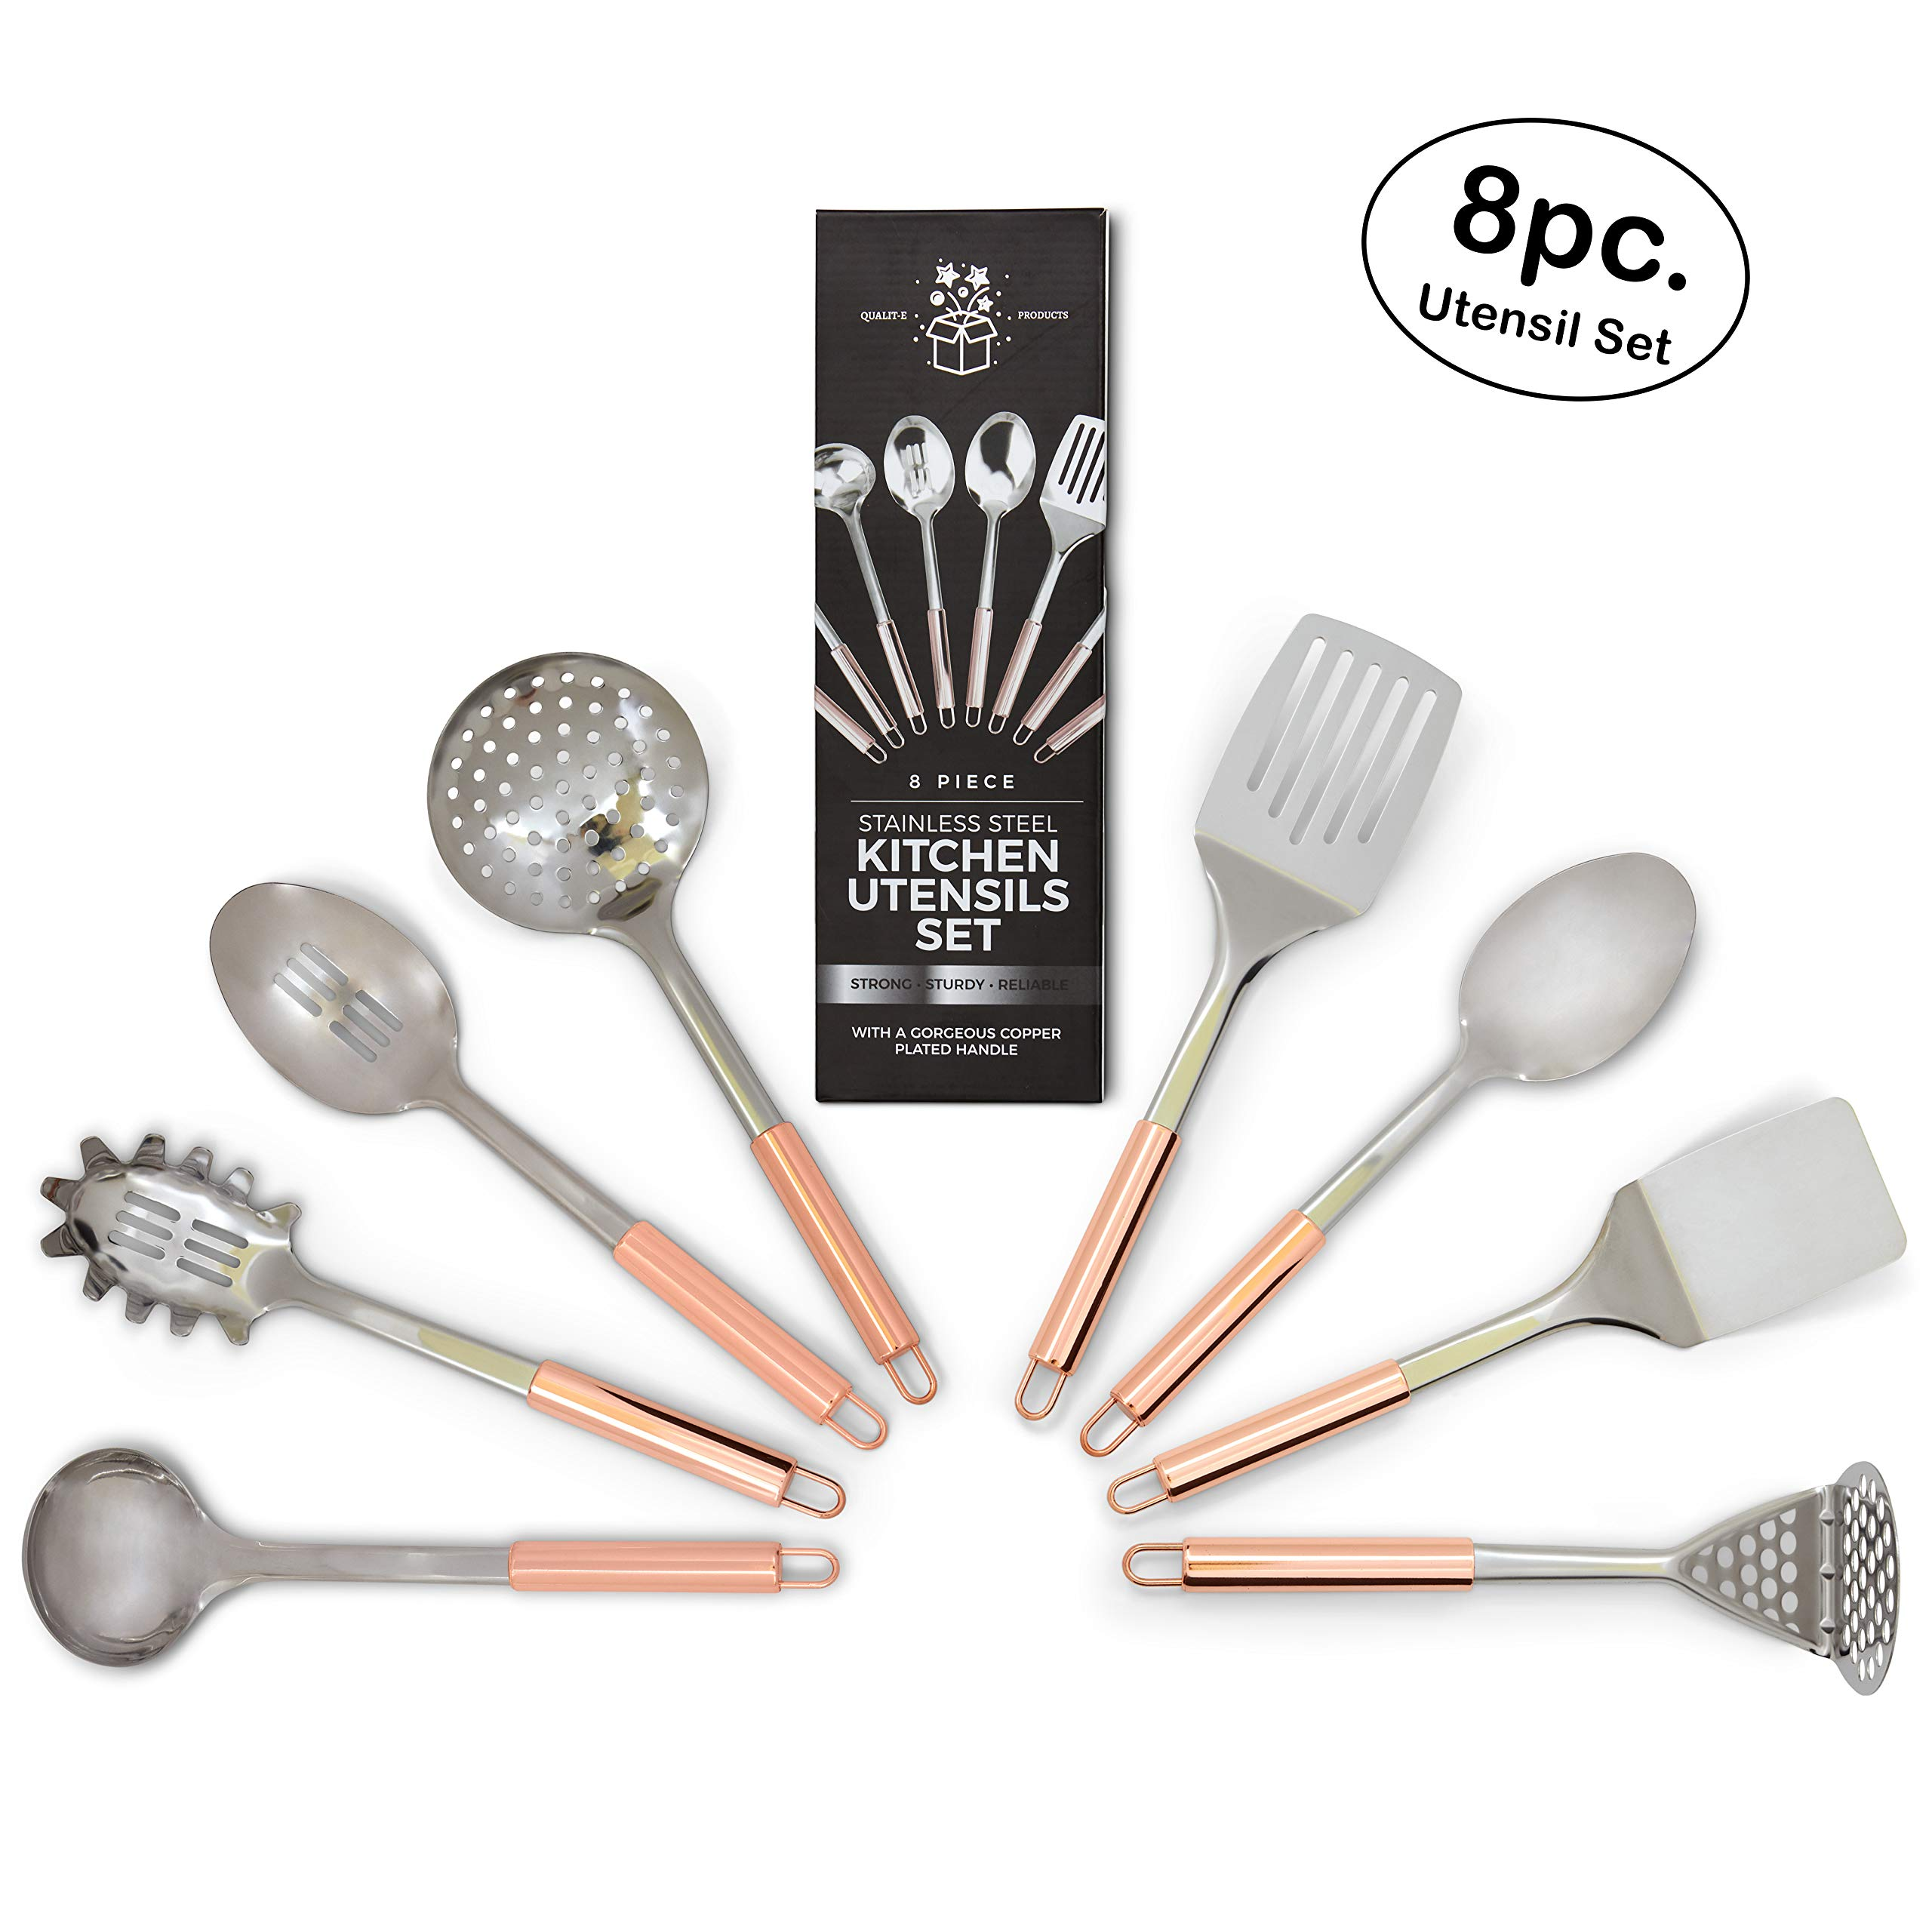 Stainless Steel Kitchen Utensil Set - Home Cooking/Spatula/Spoon/Tools/Utensils - Metal/Copper Kitchenware - Kitchen Set - Cooking Utensil - Cookware Essentials - 8 Piece Cooking Sets - Steel Utensils by Qualit-E Products